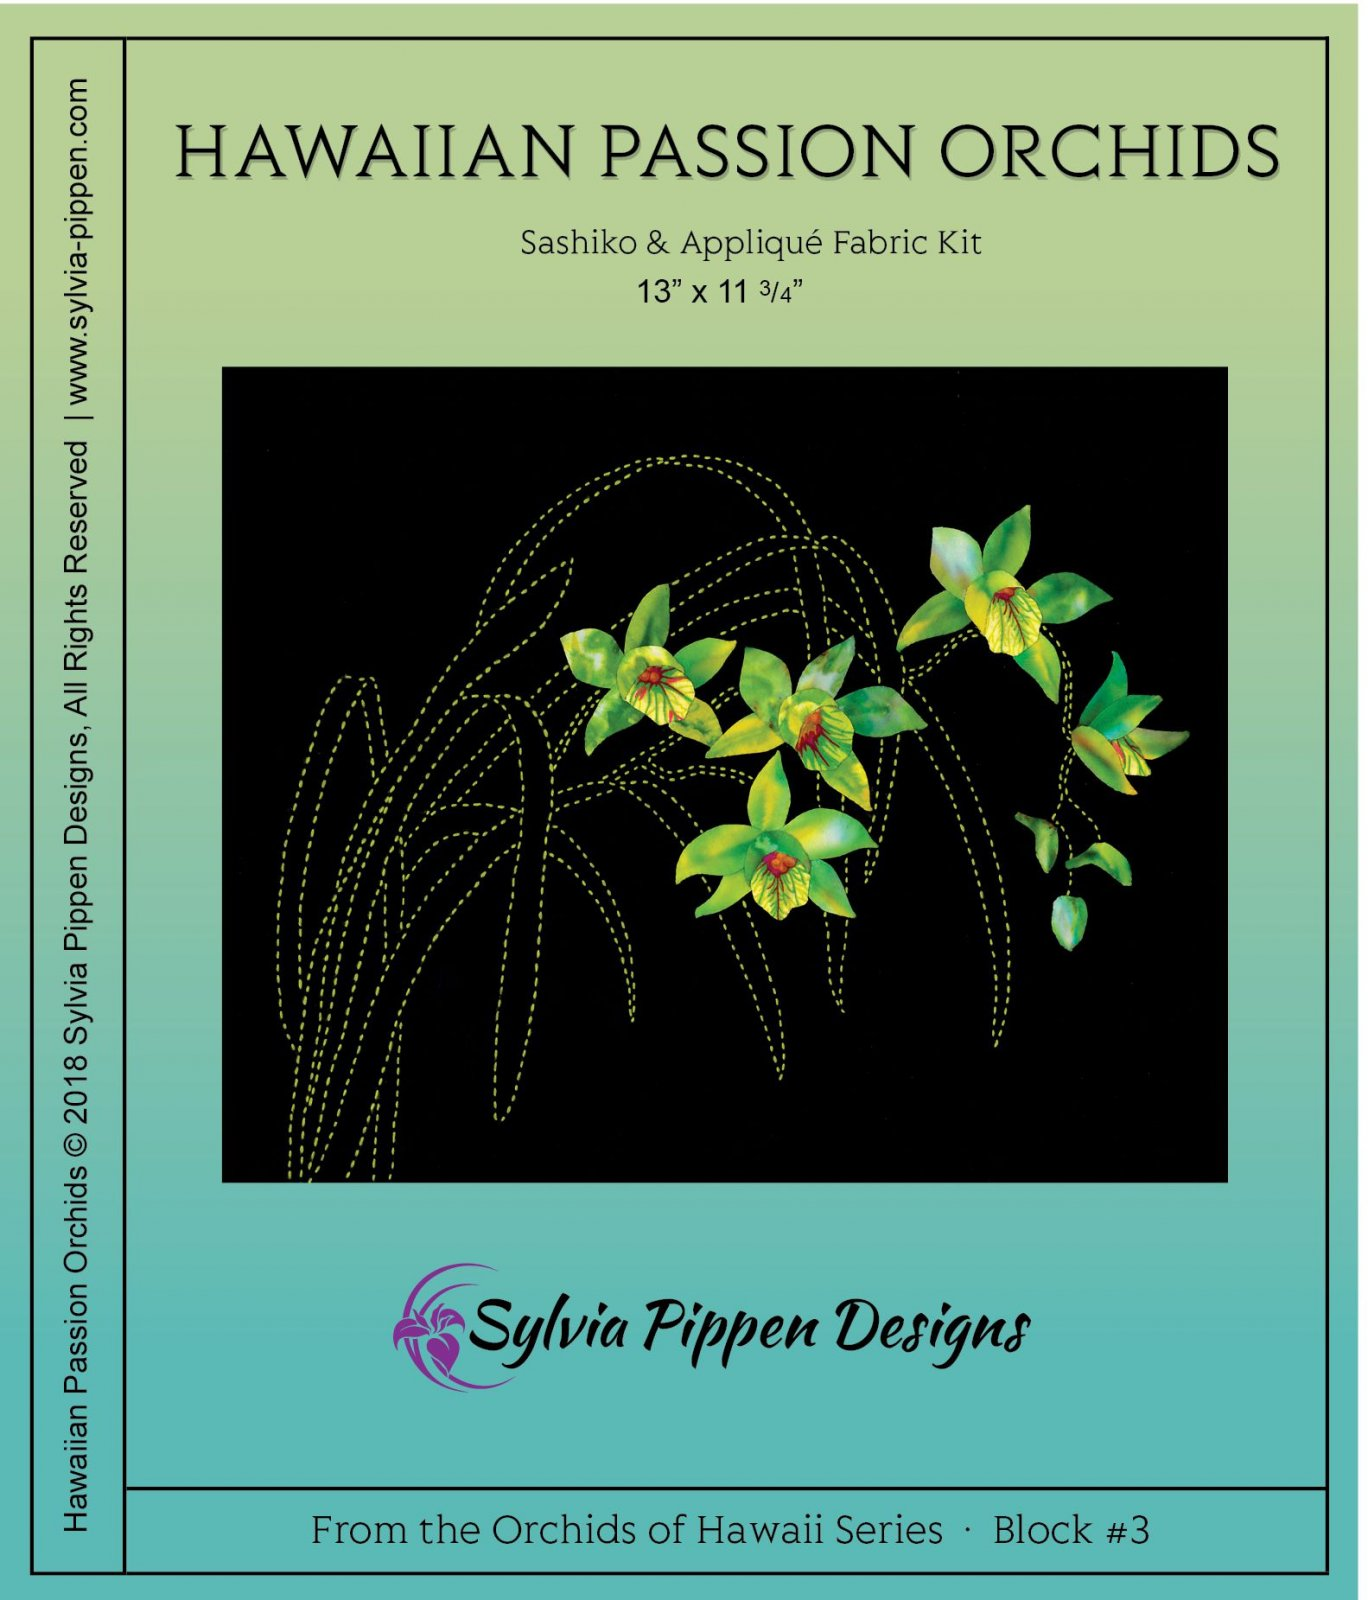 Hawaiian Passion Sashiko & Applique Fabric Kit from the Orchids of Hawaii Series